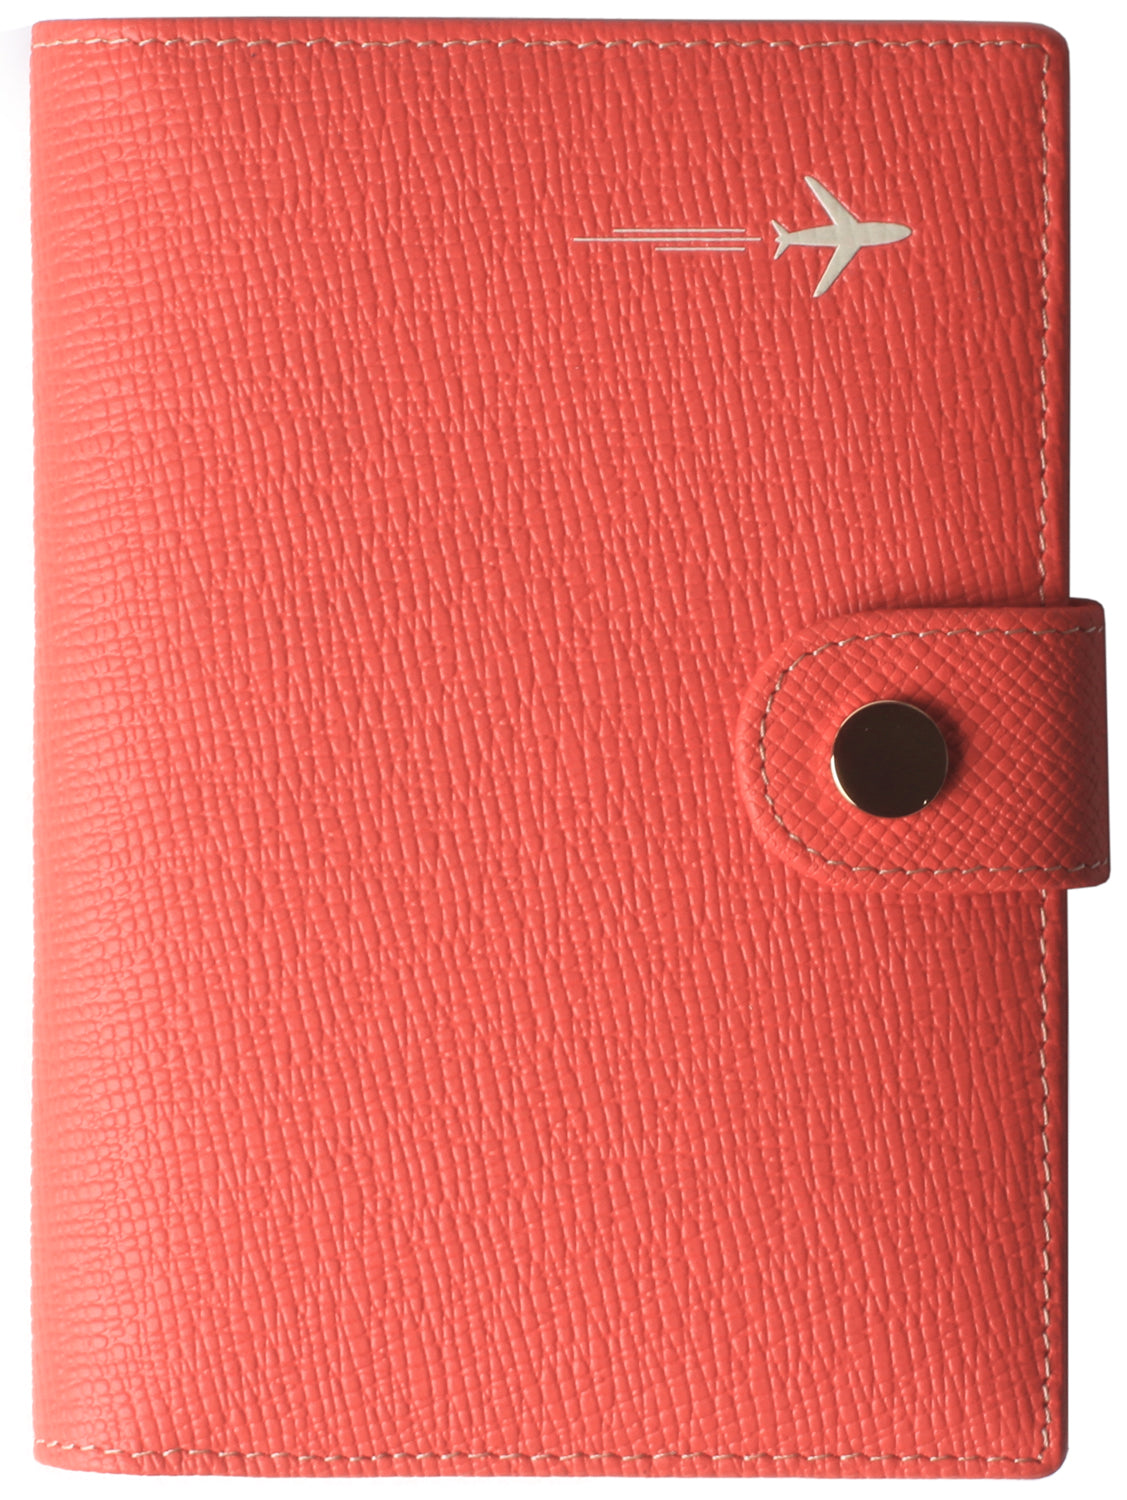 Leather Rfid Blocking Travel Passport Holder Cover Slim ID Card Case Wallet Crosshatch BG1233 Red - Borgasets